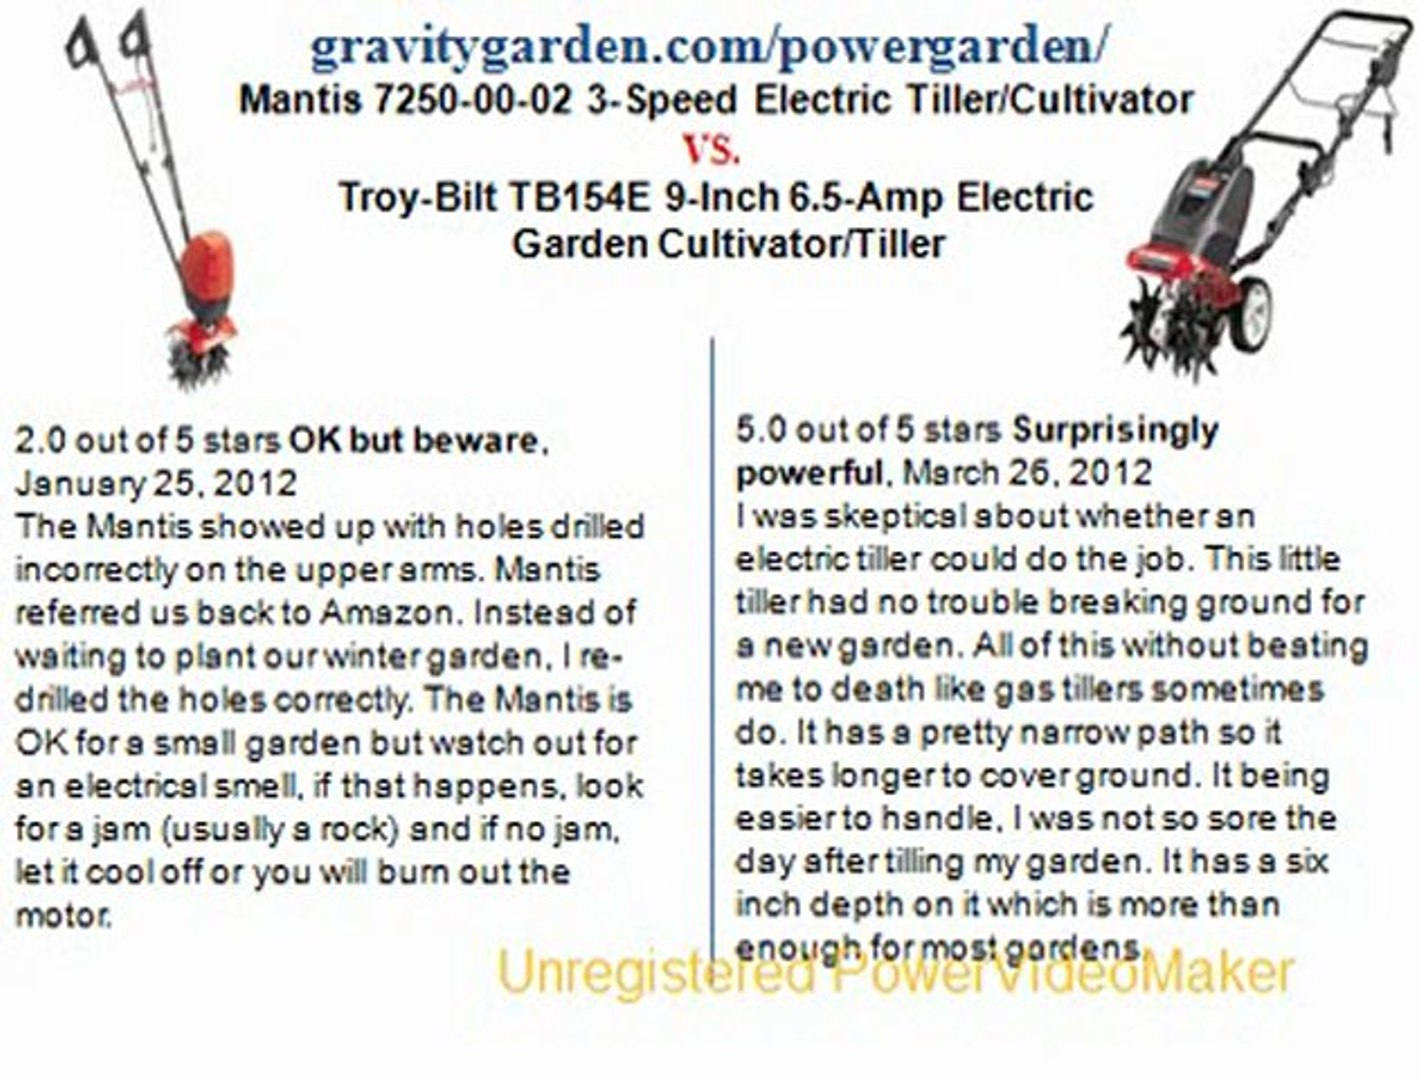 Mantis 7250-00-02 3-Speed Electric Tiller Cultivator (Lawn